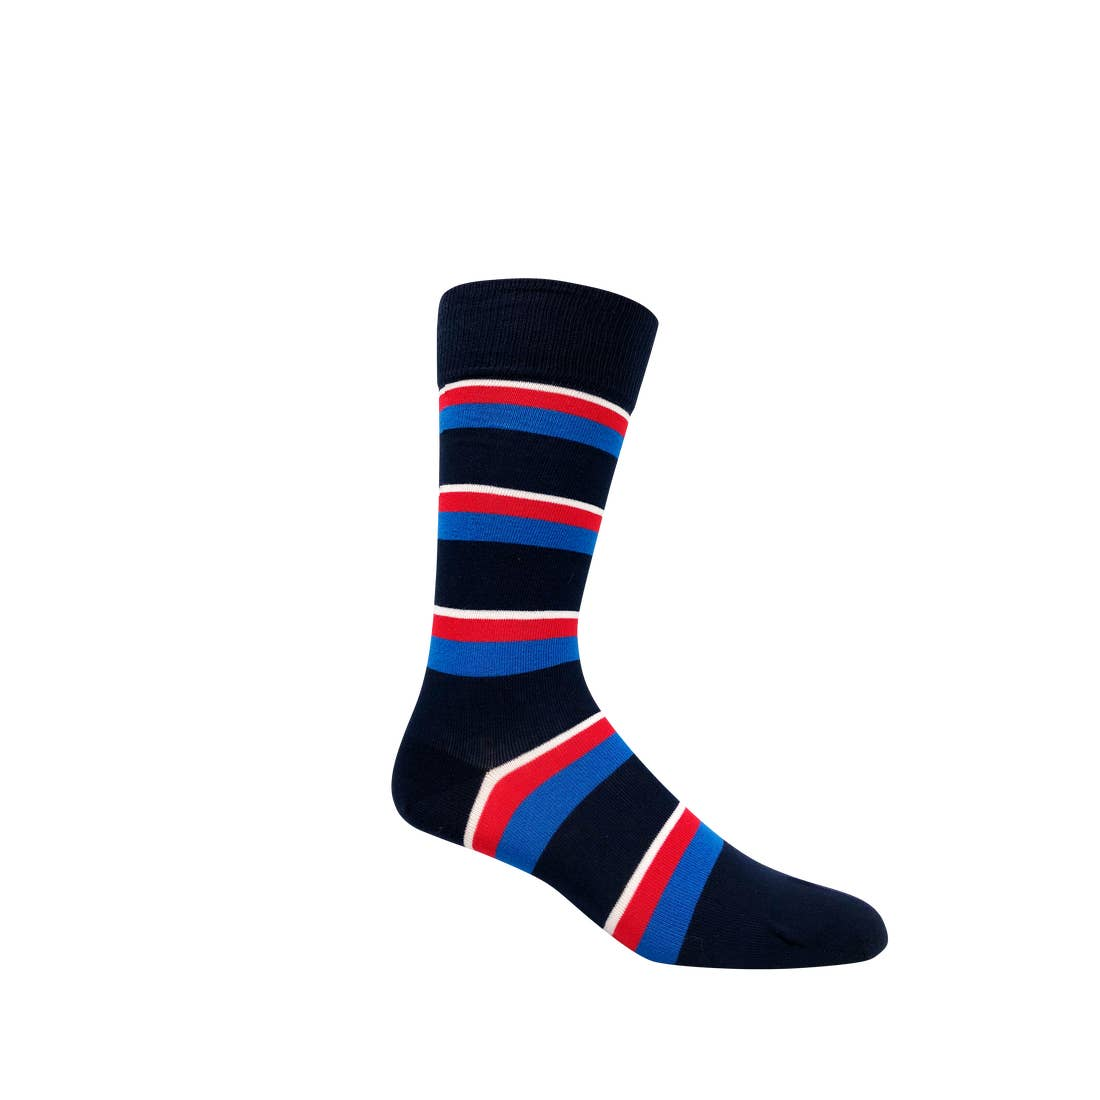 New York | Love Sock Company